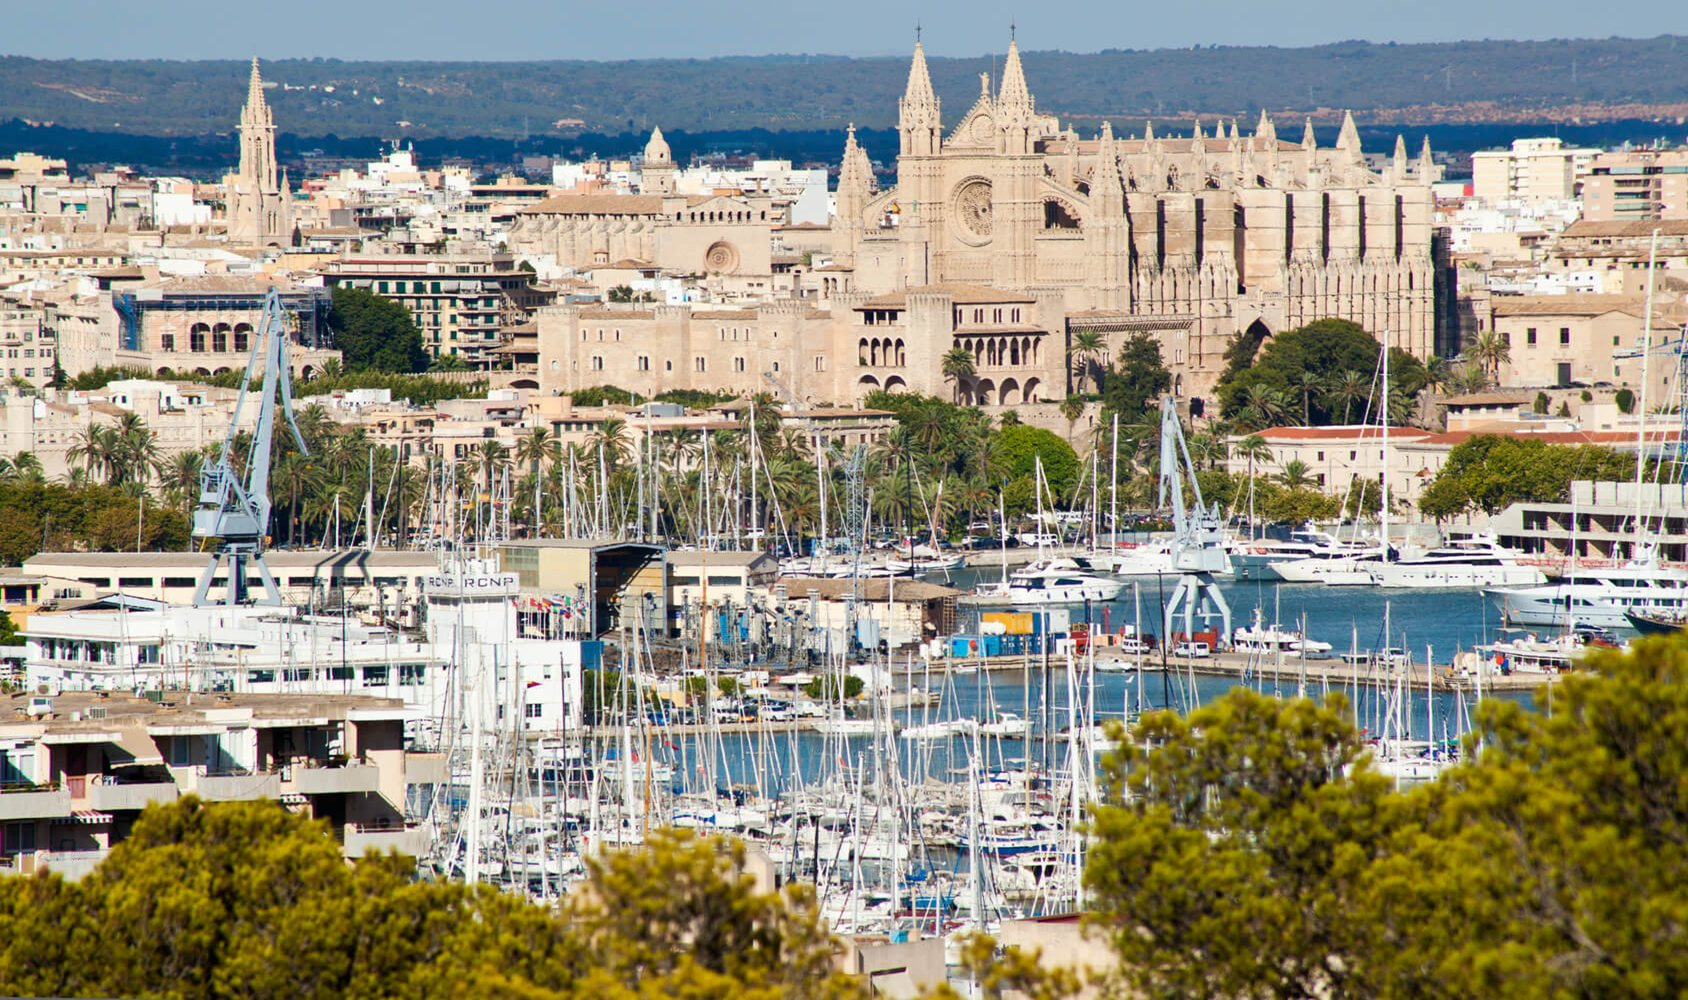 Palma de Mallorca - One of the most liveable cities in Europe